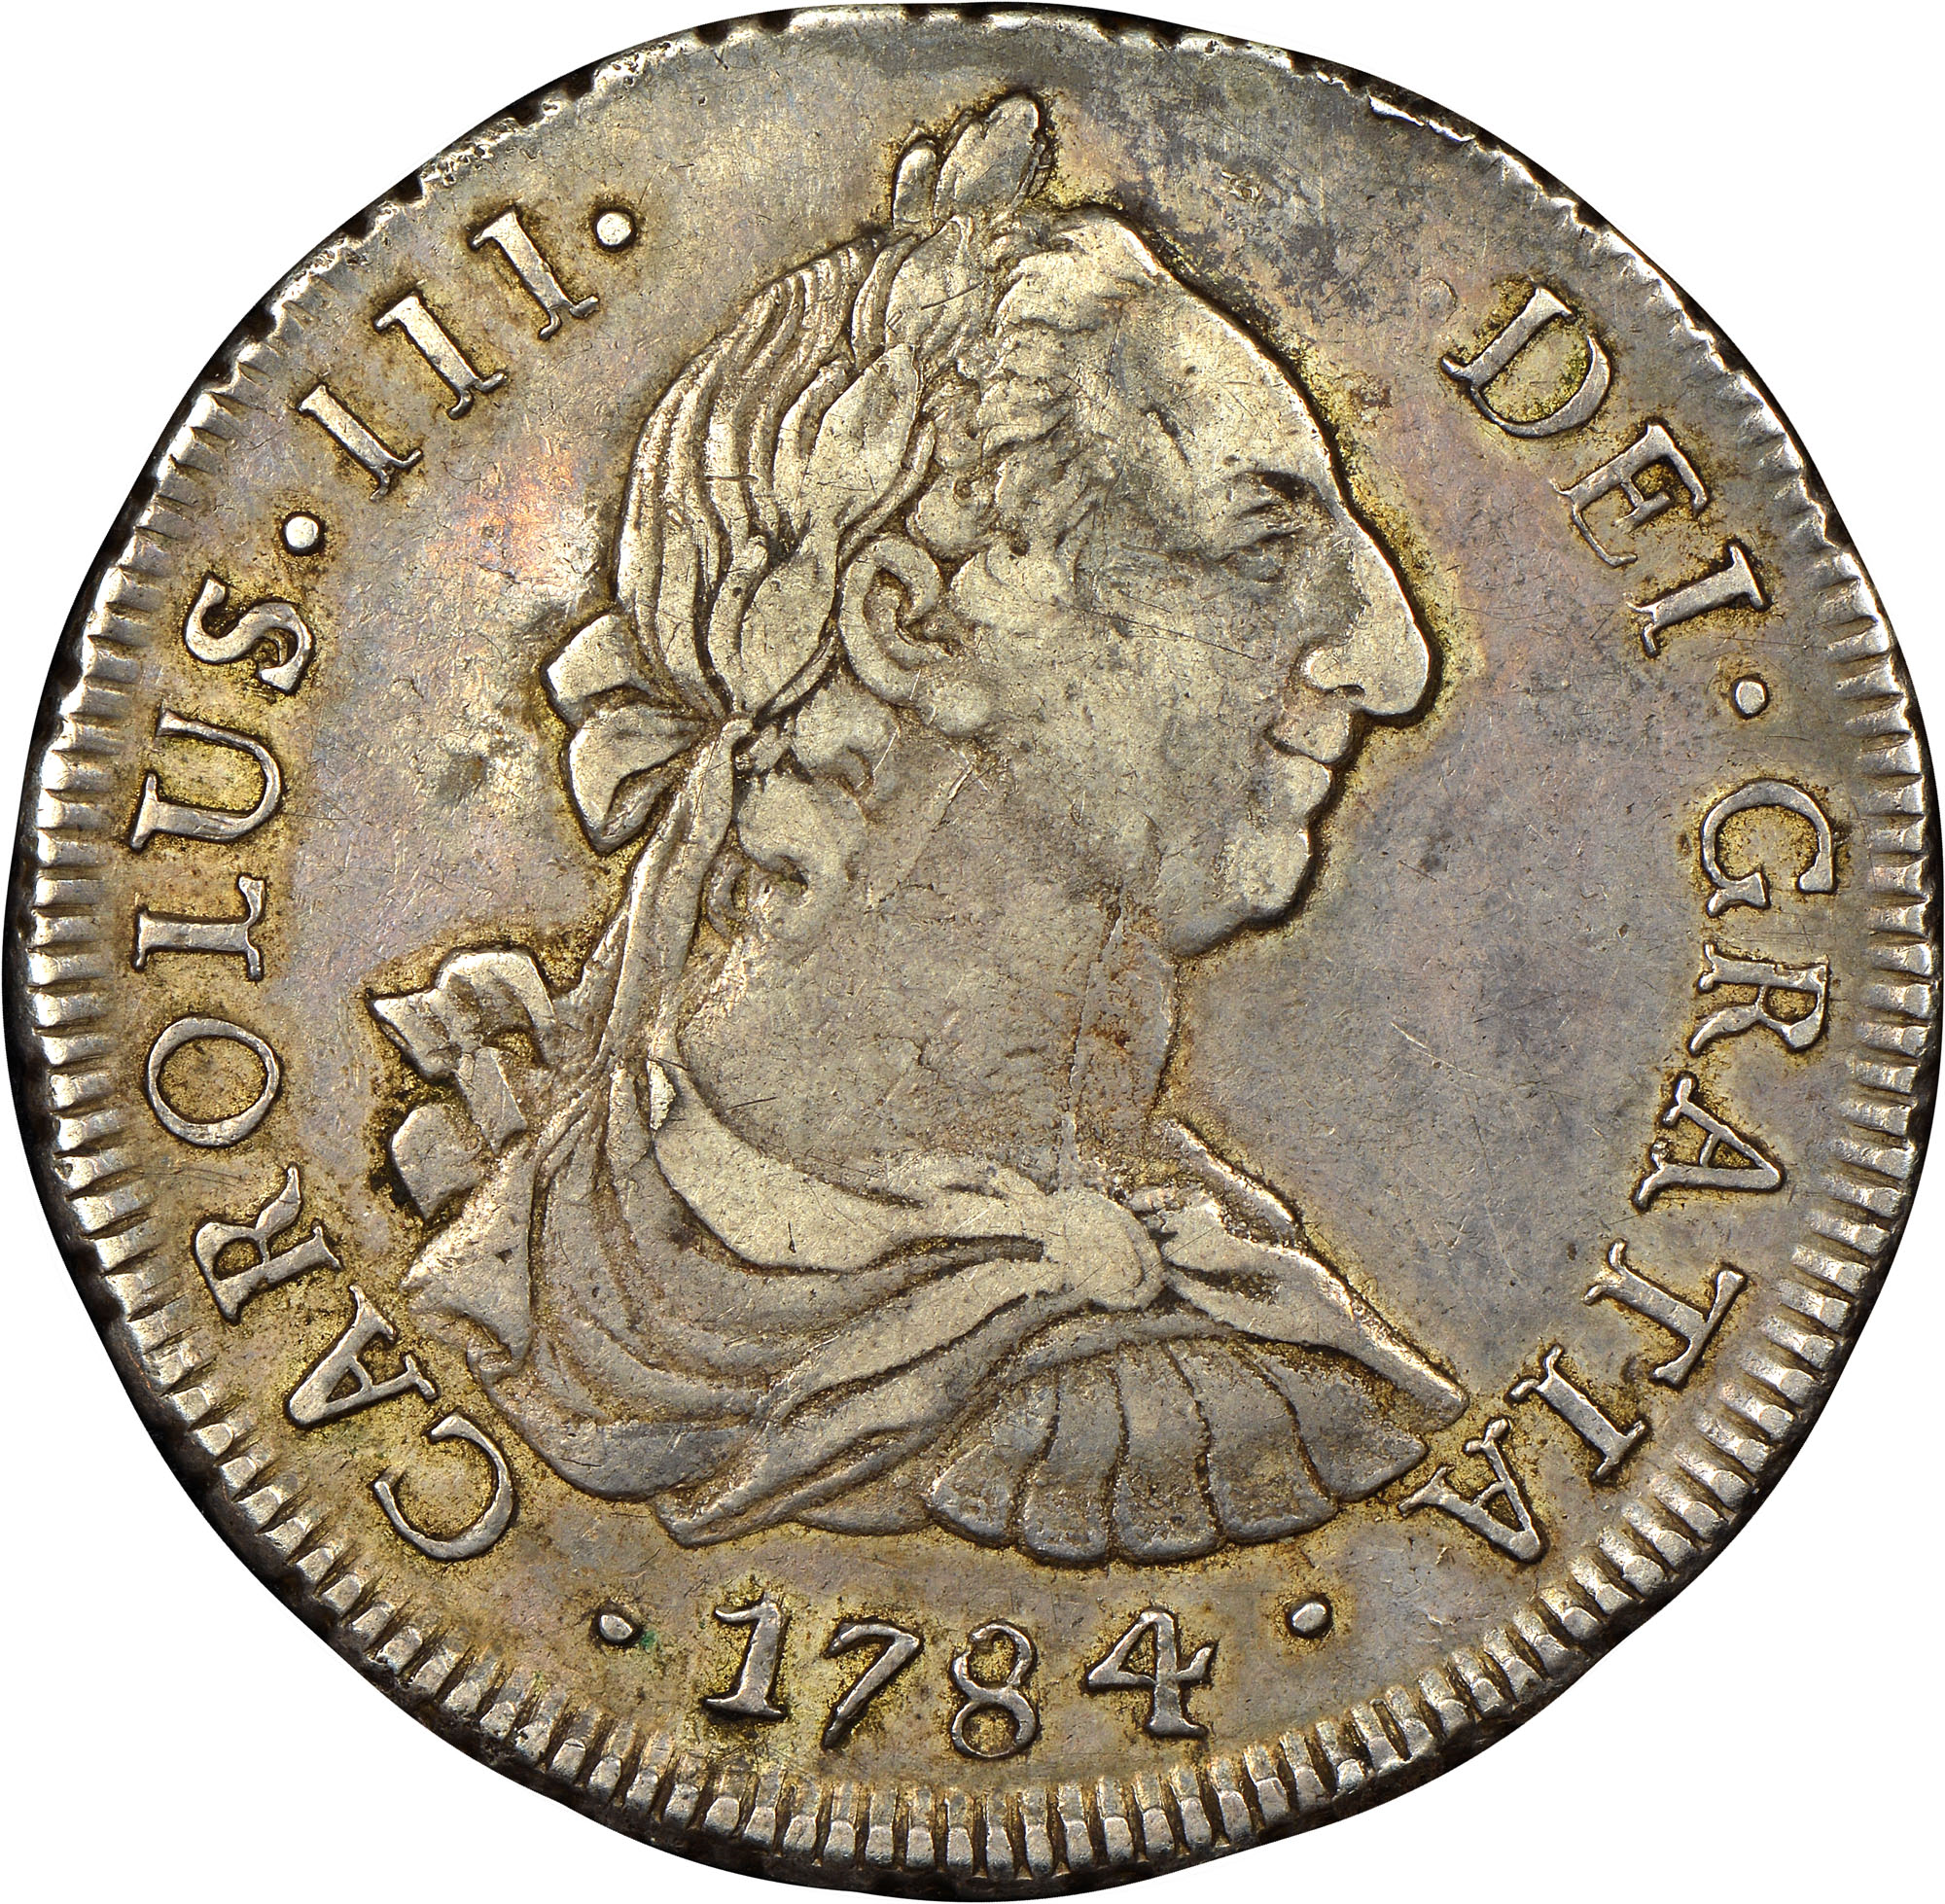 1773-1789/8 Chile 8 Reales obverse